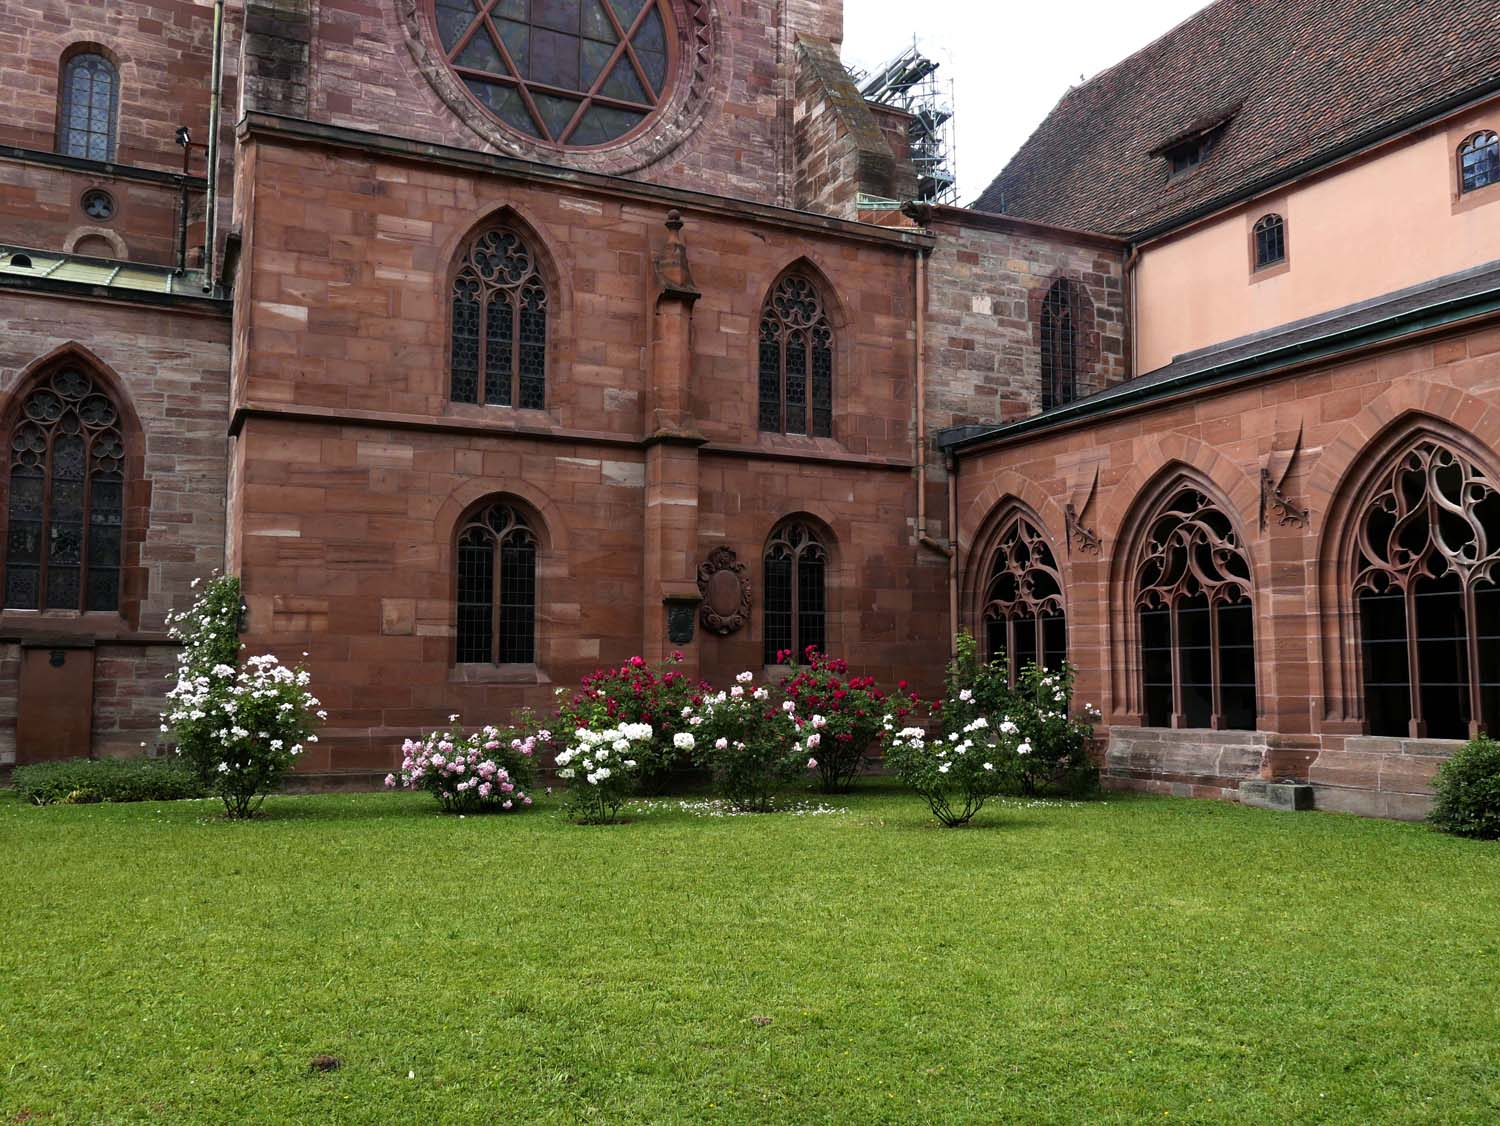 The courtyard of the Basler Münster